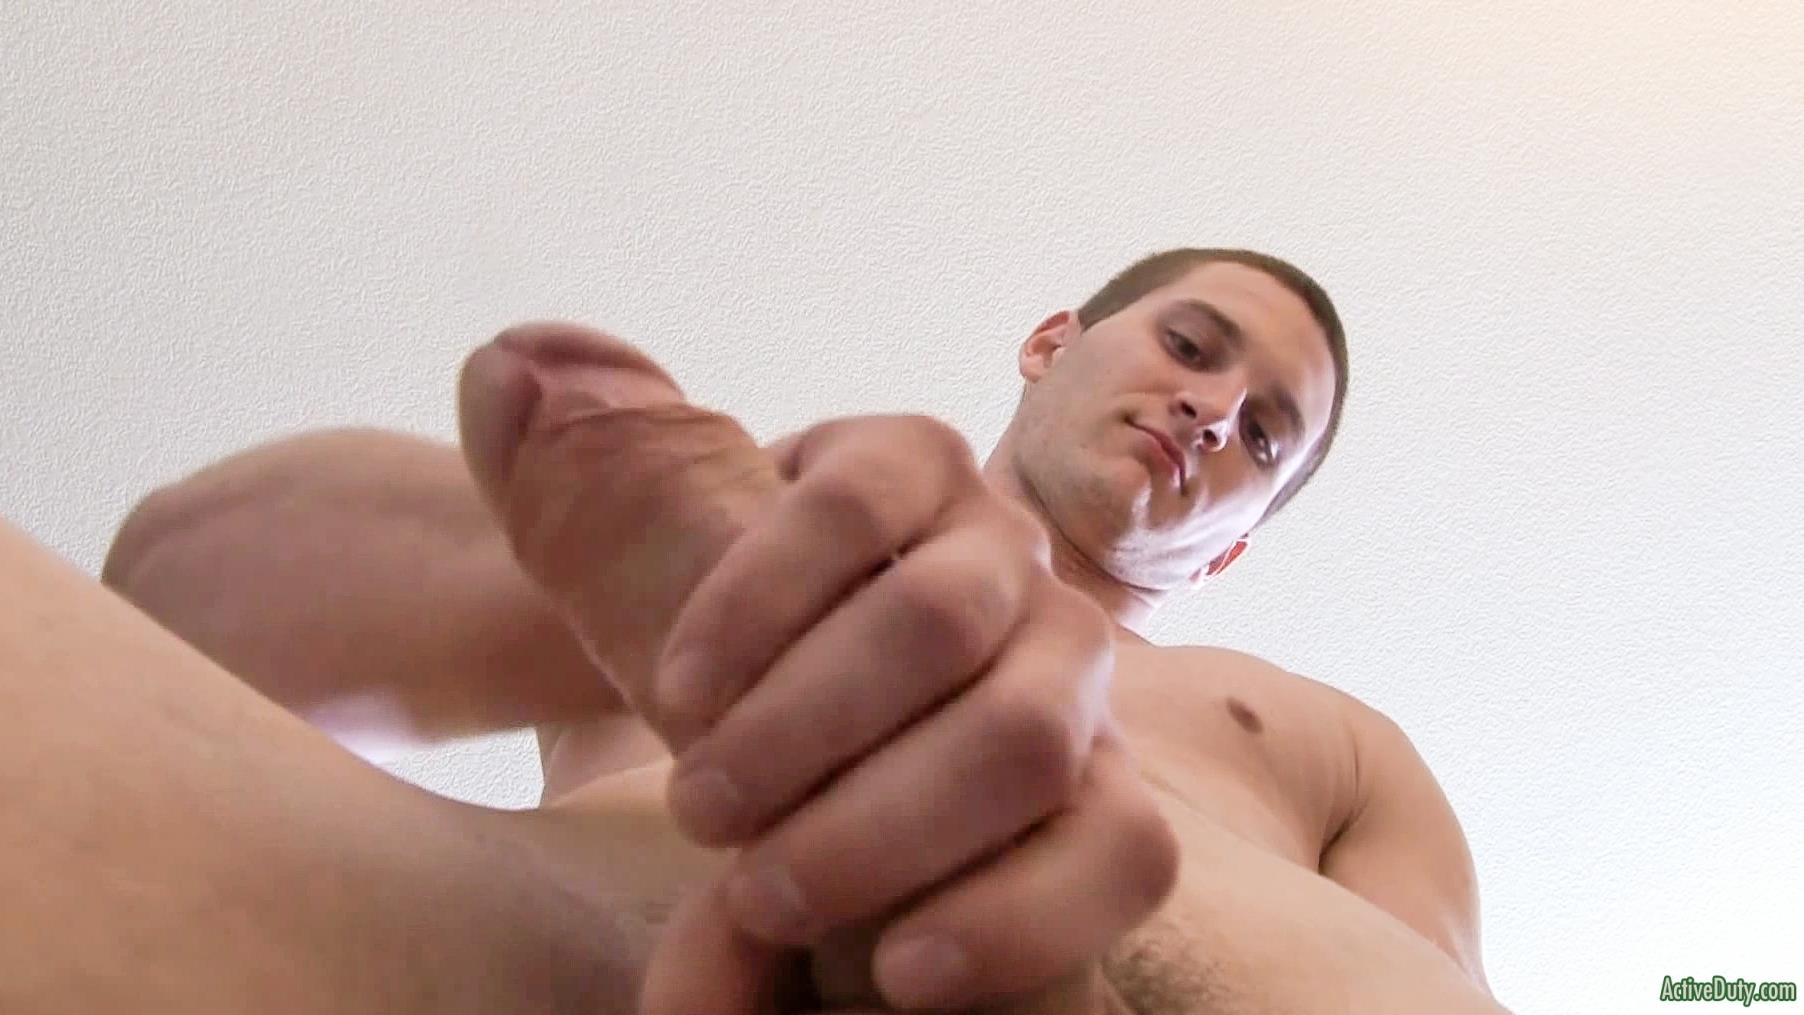 Active-Duty-Allen-Lucas-Army-Private-Jerking-Off-Big-Uncut-Cock-Amateur-Gay-Porn-09 US Army Private Jerking His Big Uncut Cock